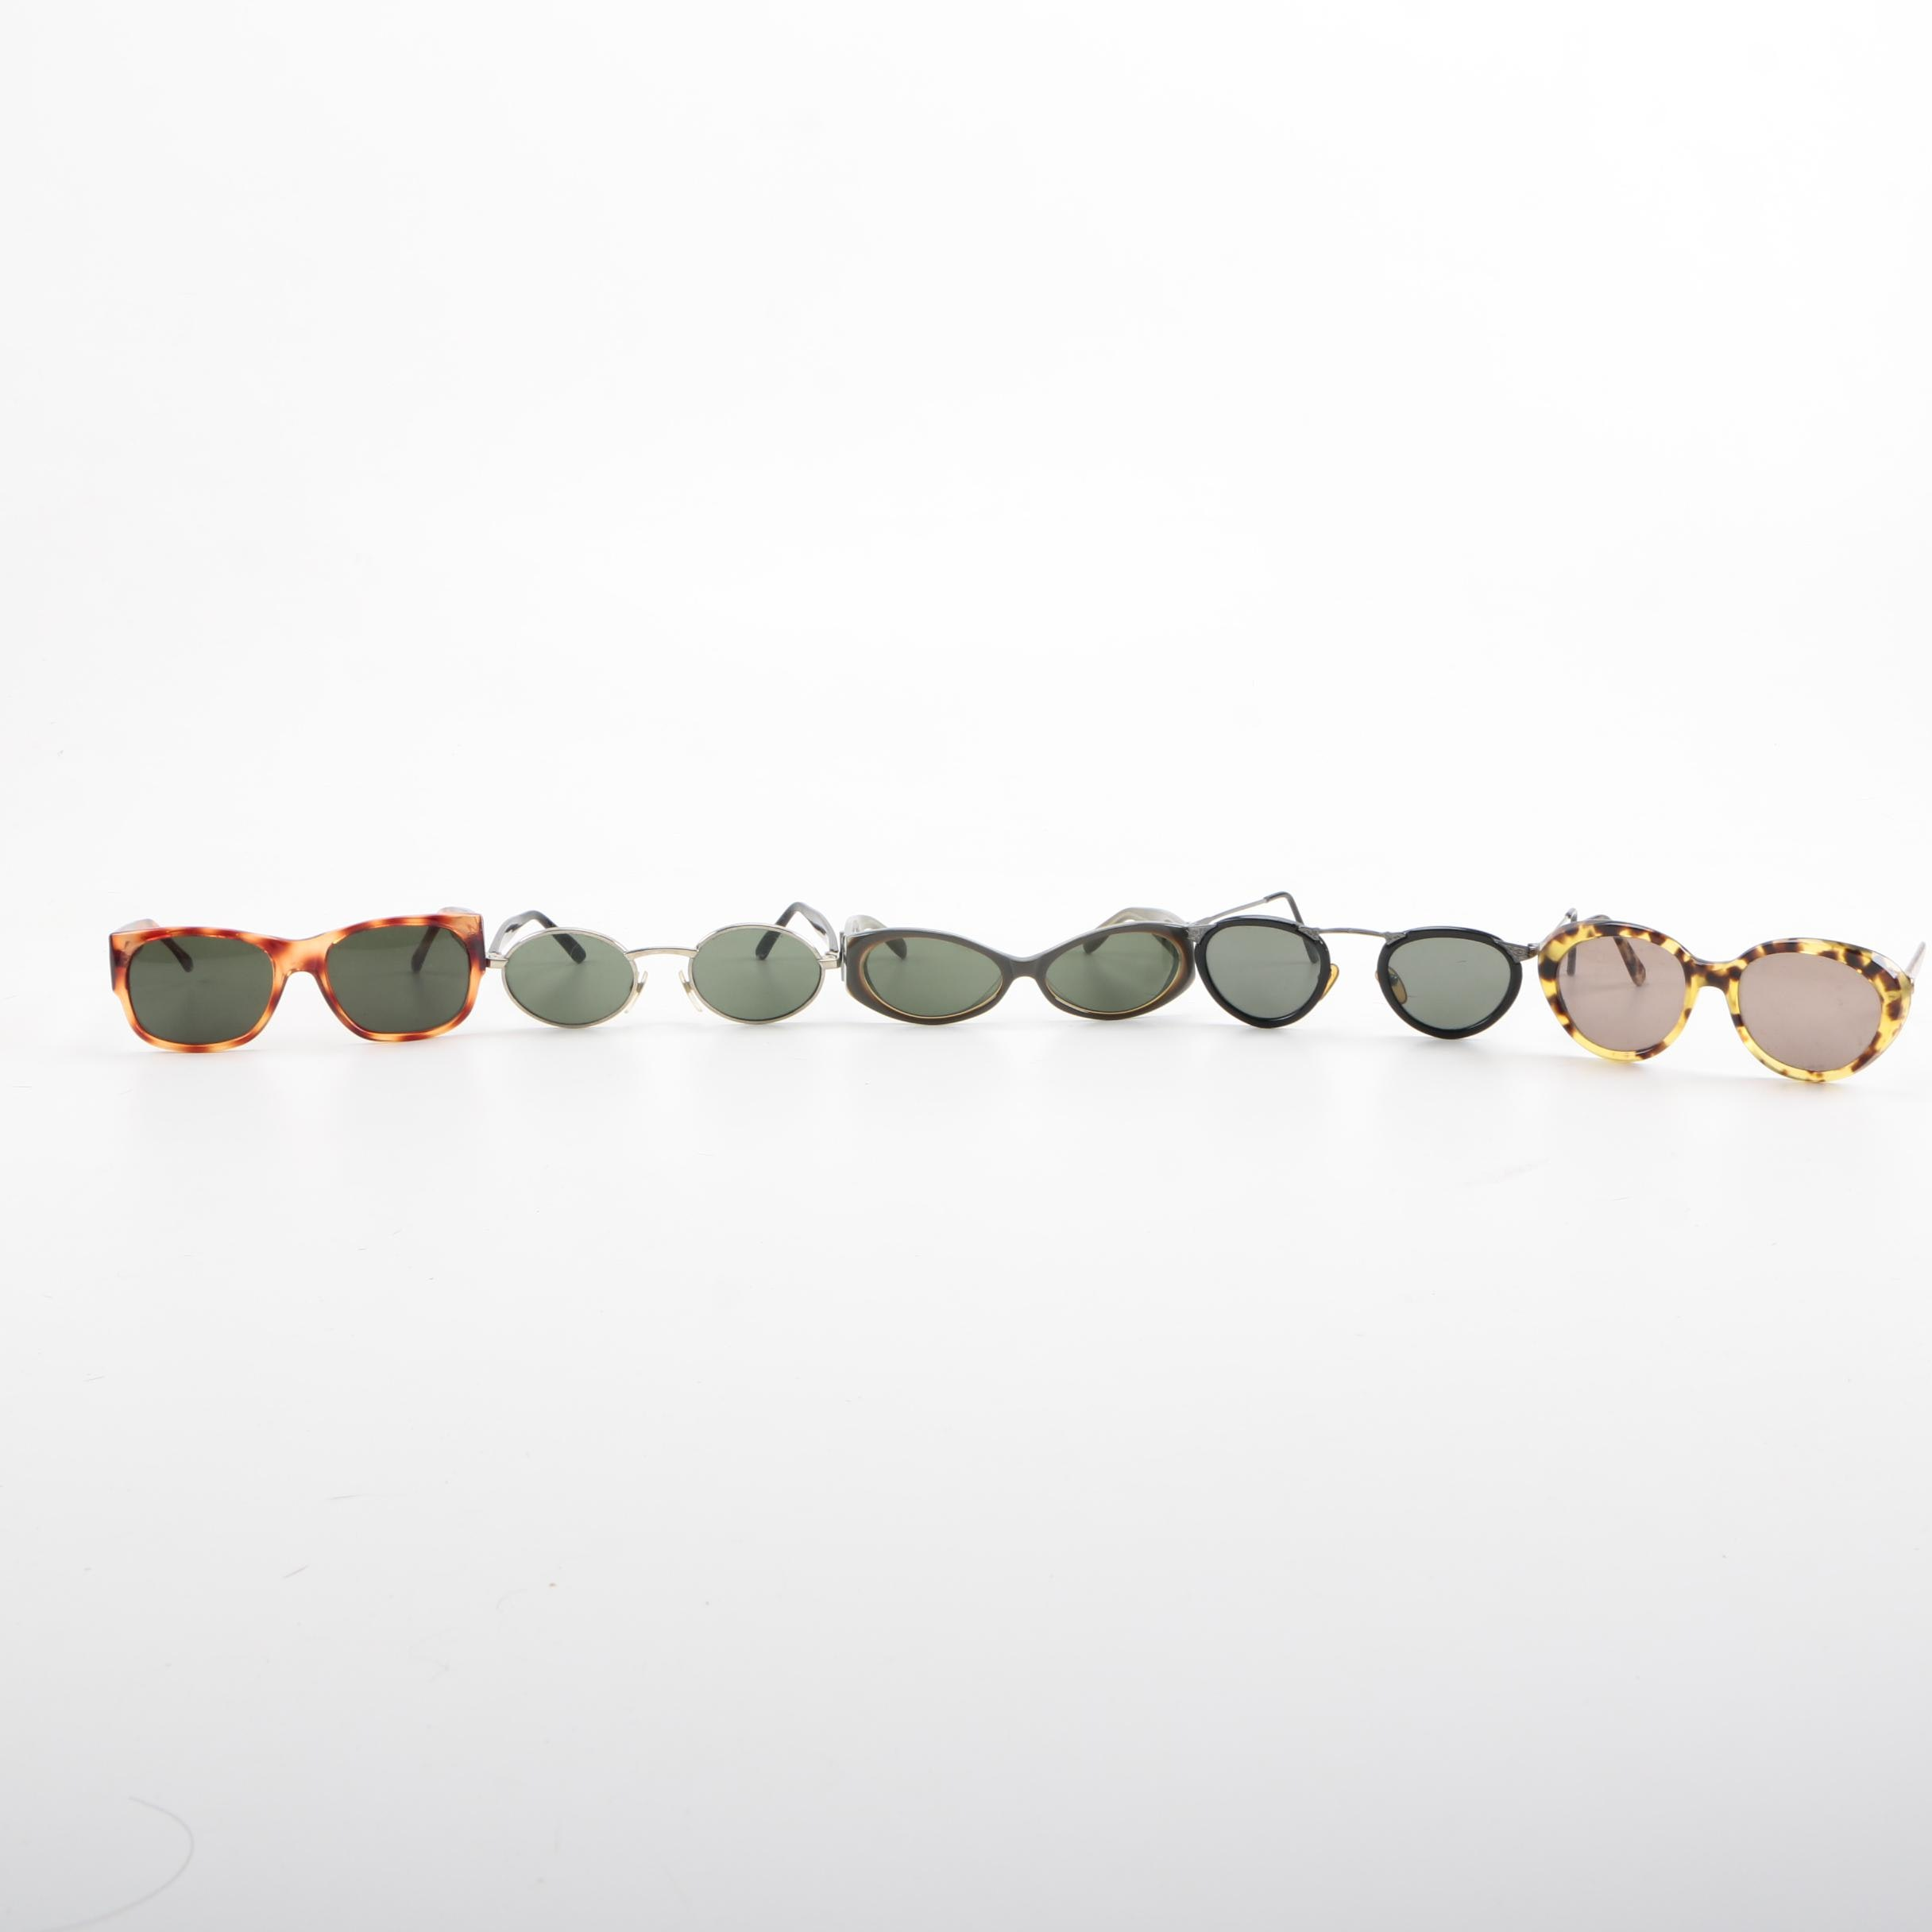 Collection of Sunglasses